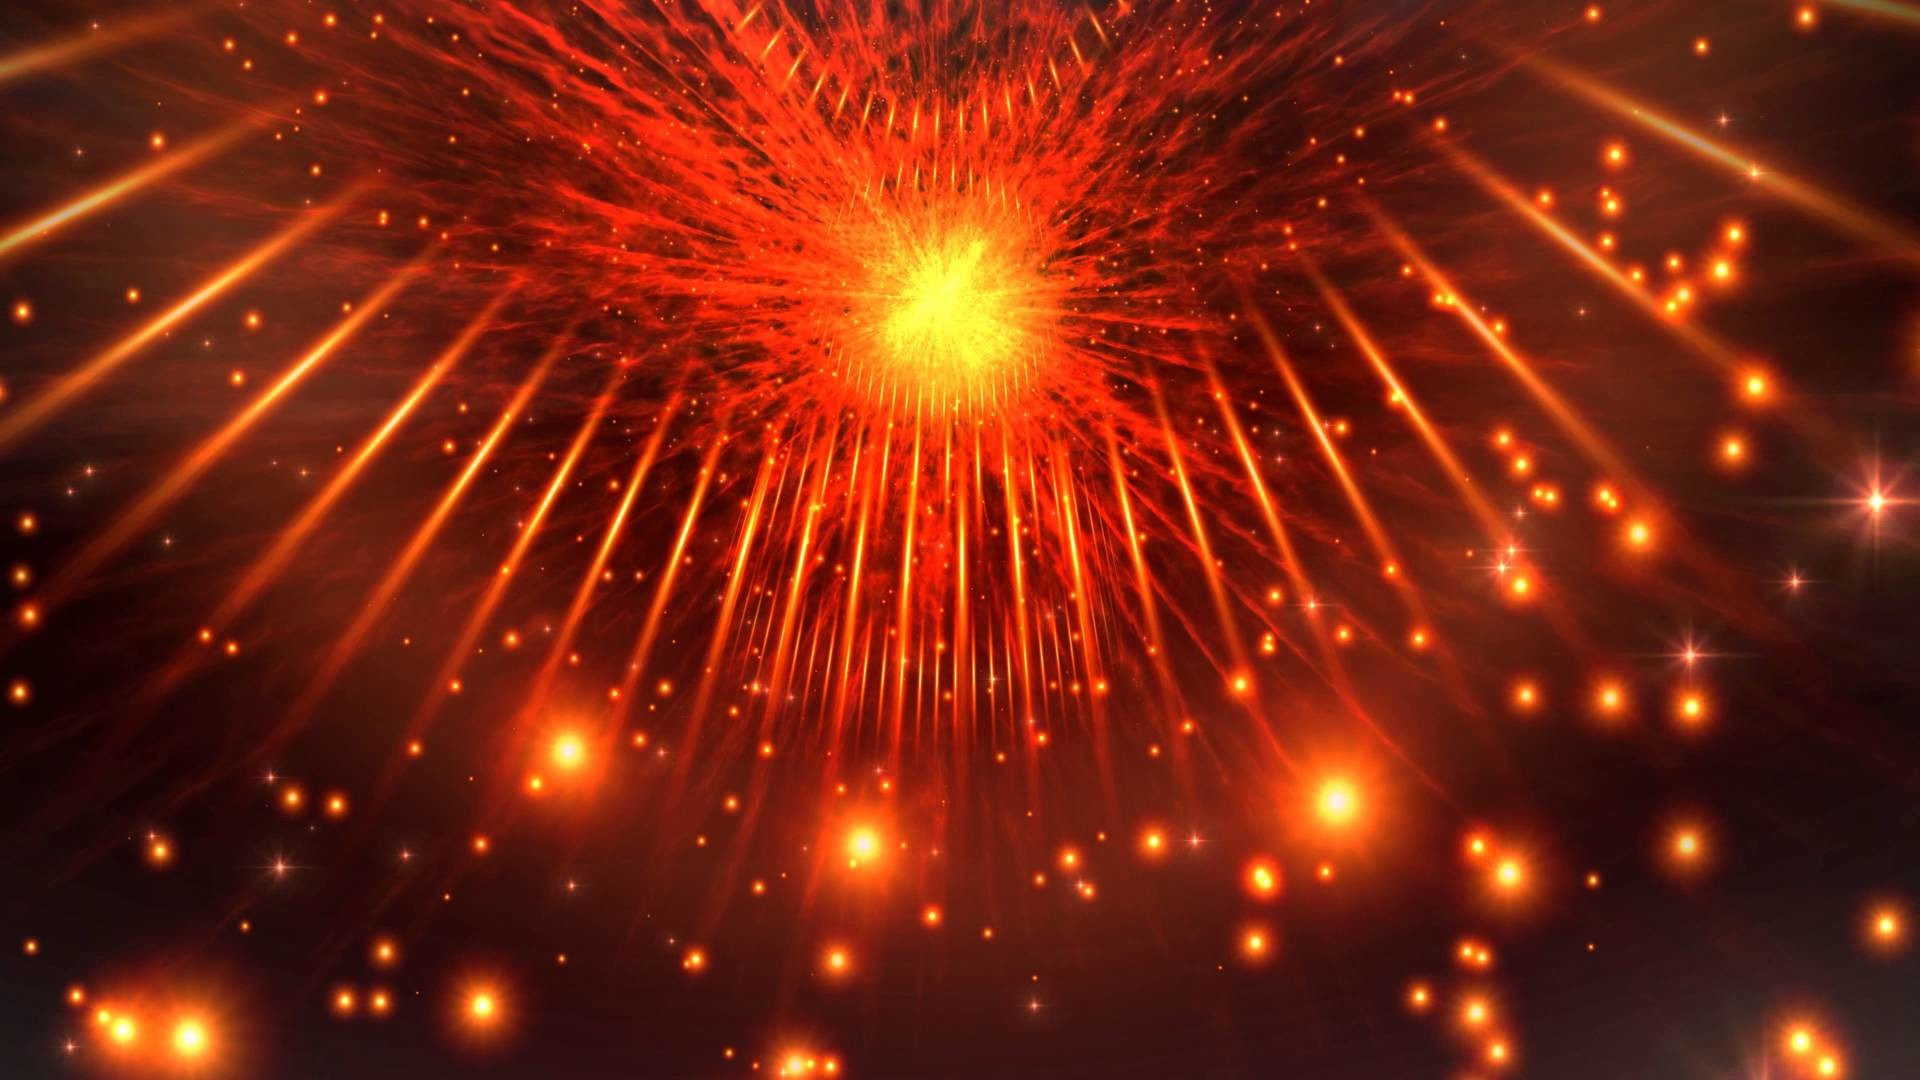 Hd Diwali Wallpapers Free Spiritual Backgrounds 48 Images